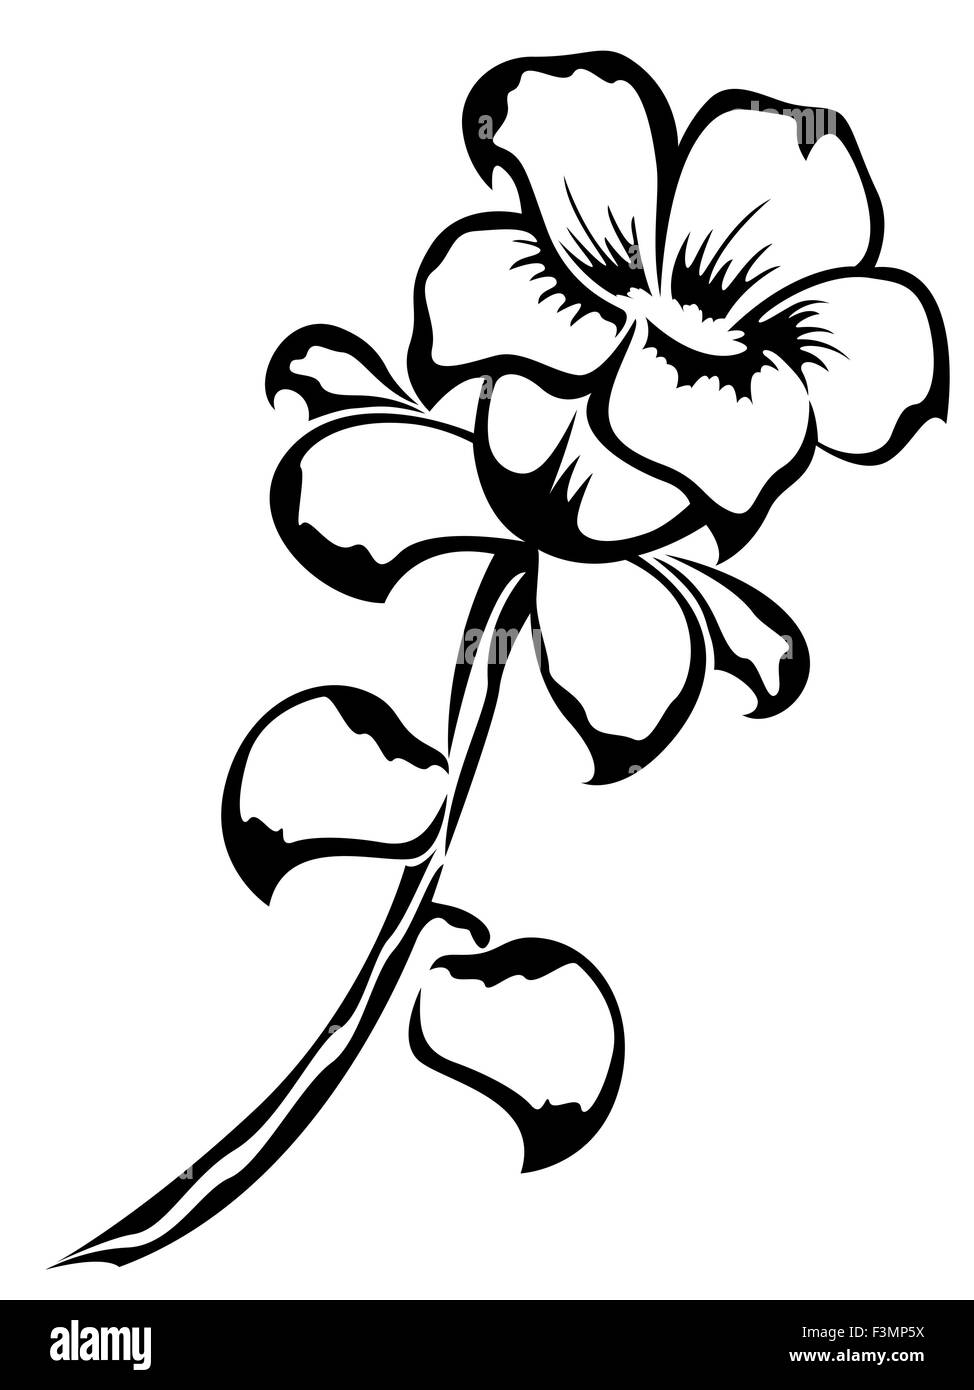 Black Outline Of Single Flower Isolated On A White Background